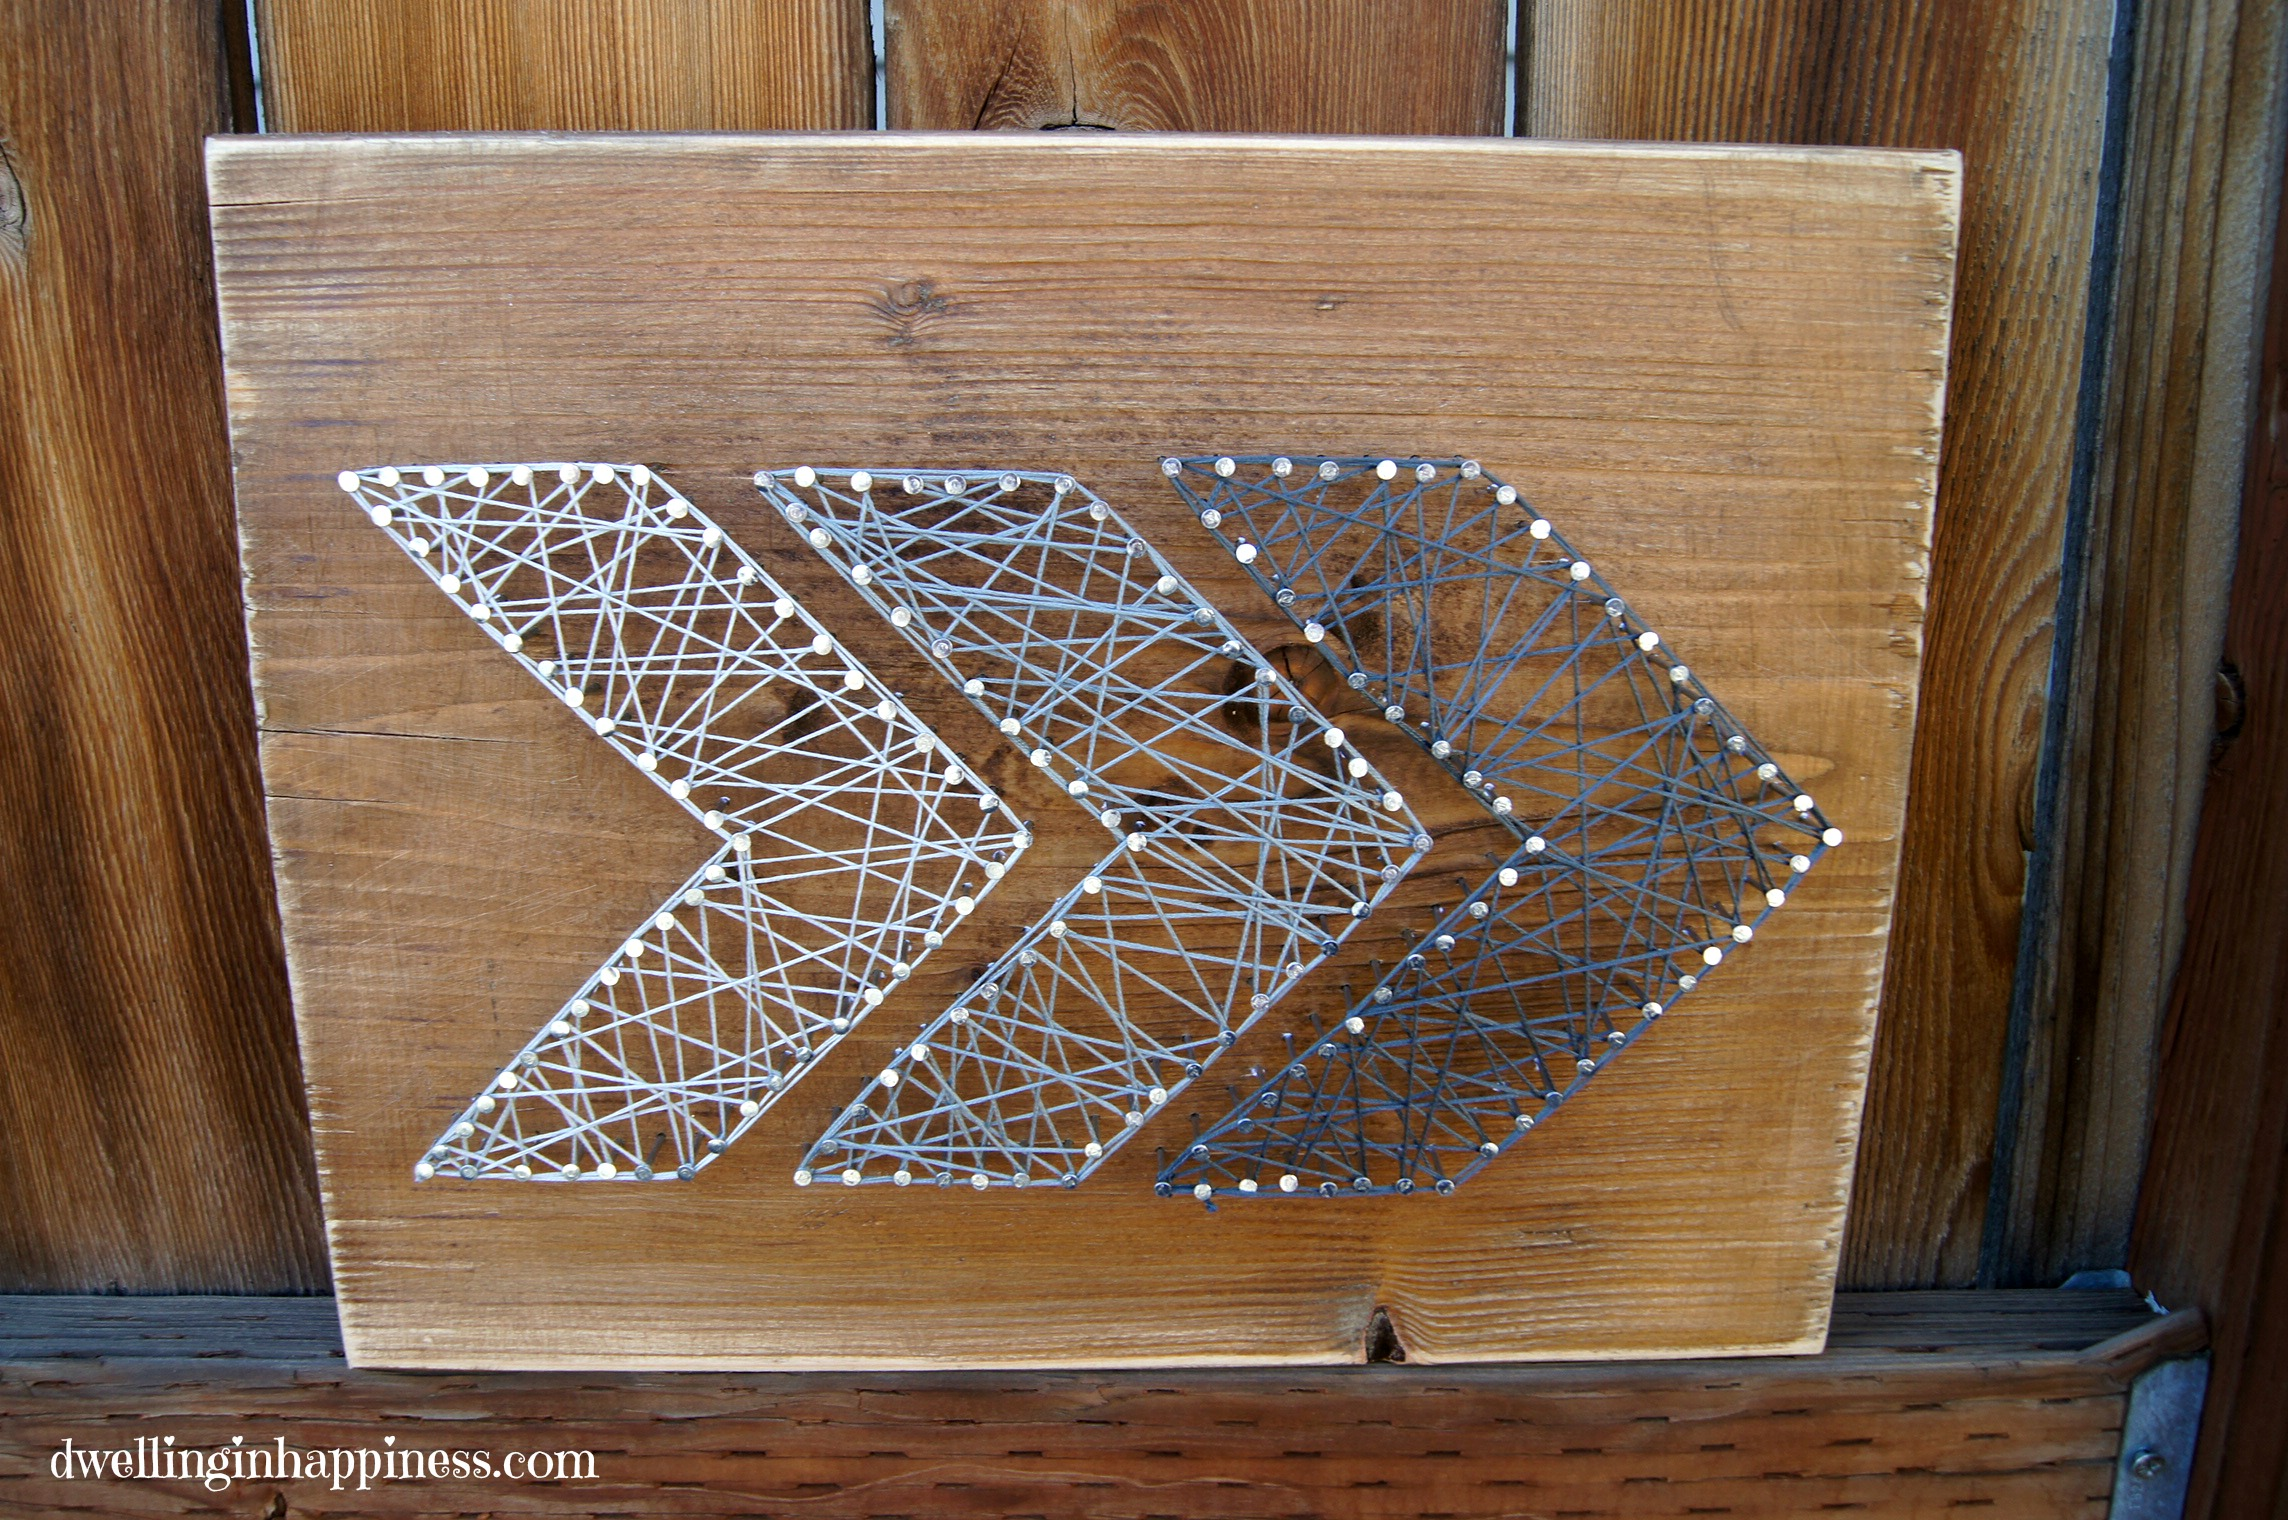 string art thing is kind of addicting, and now I want to string art ...